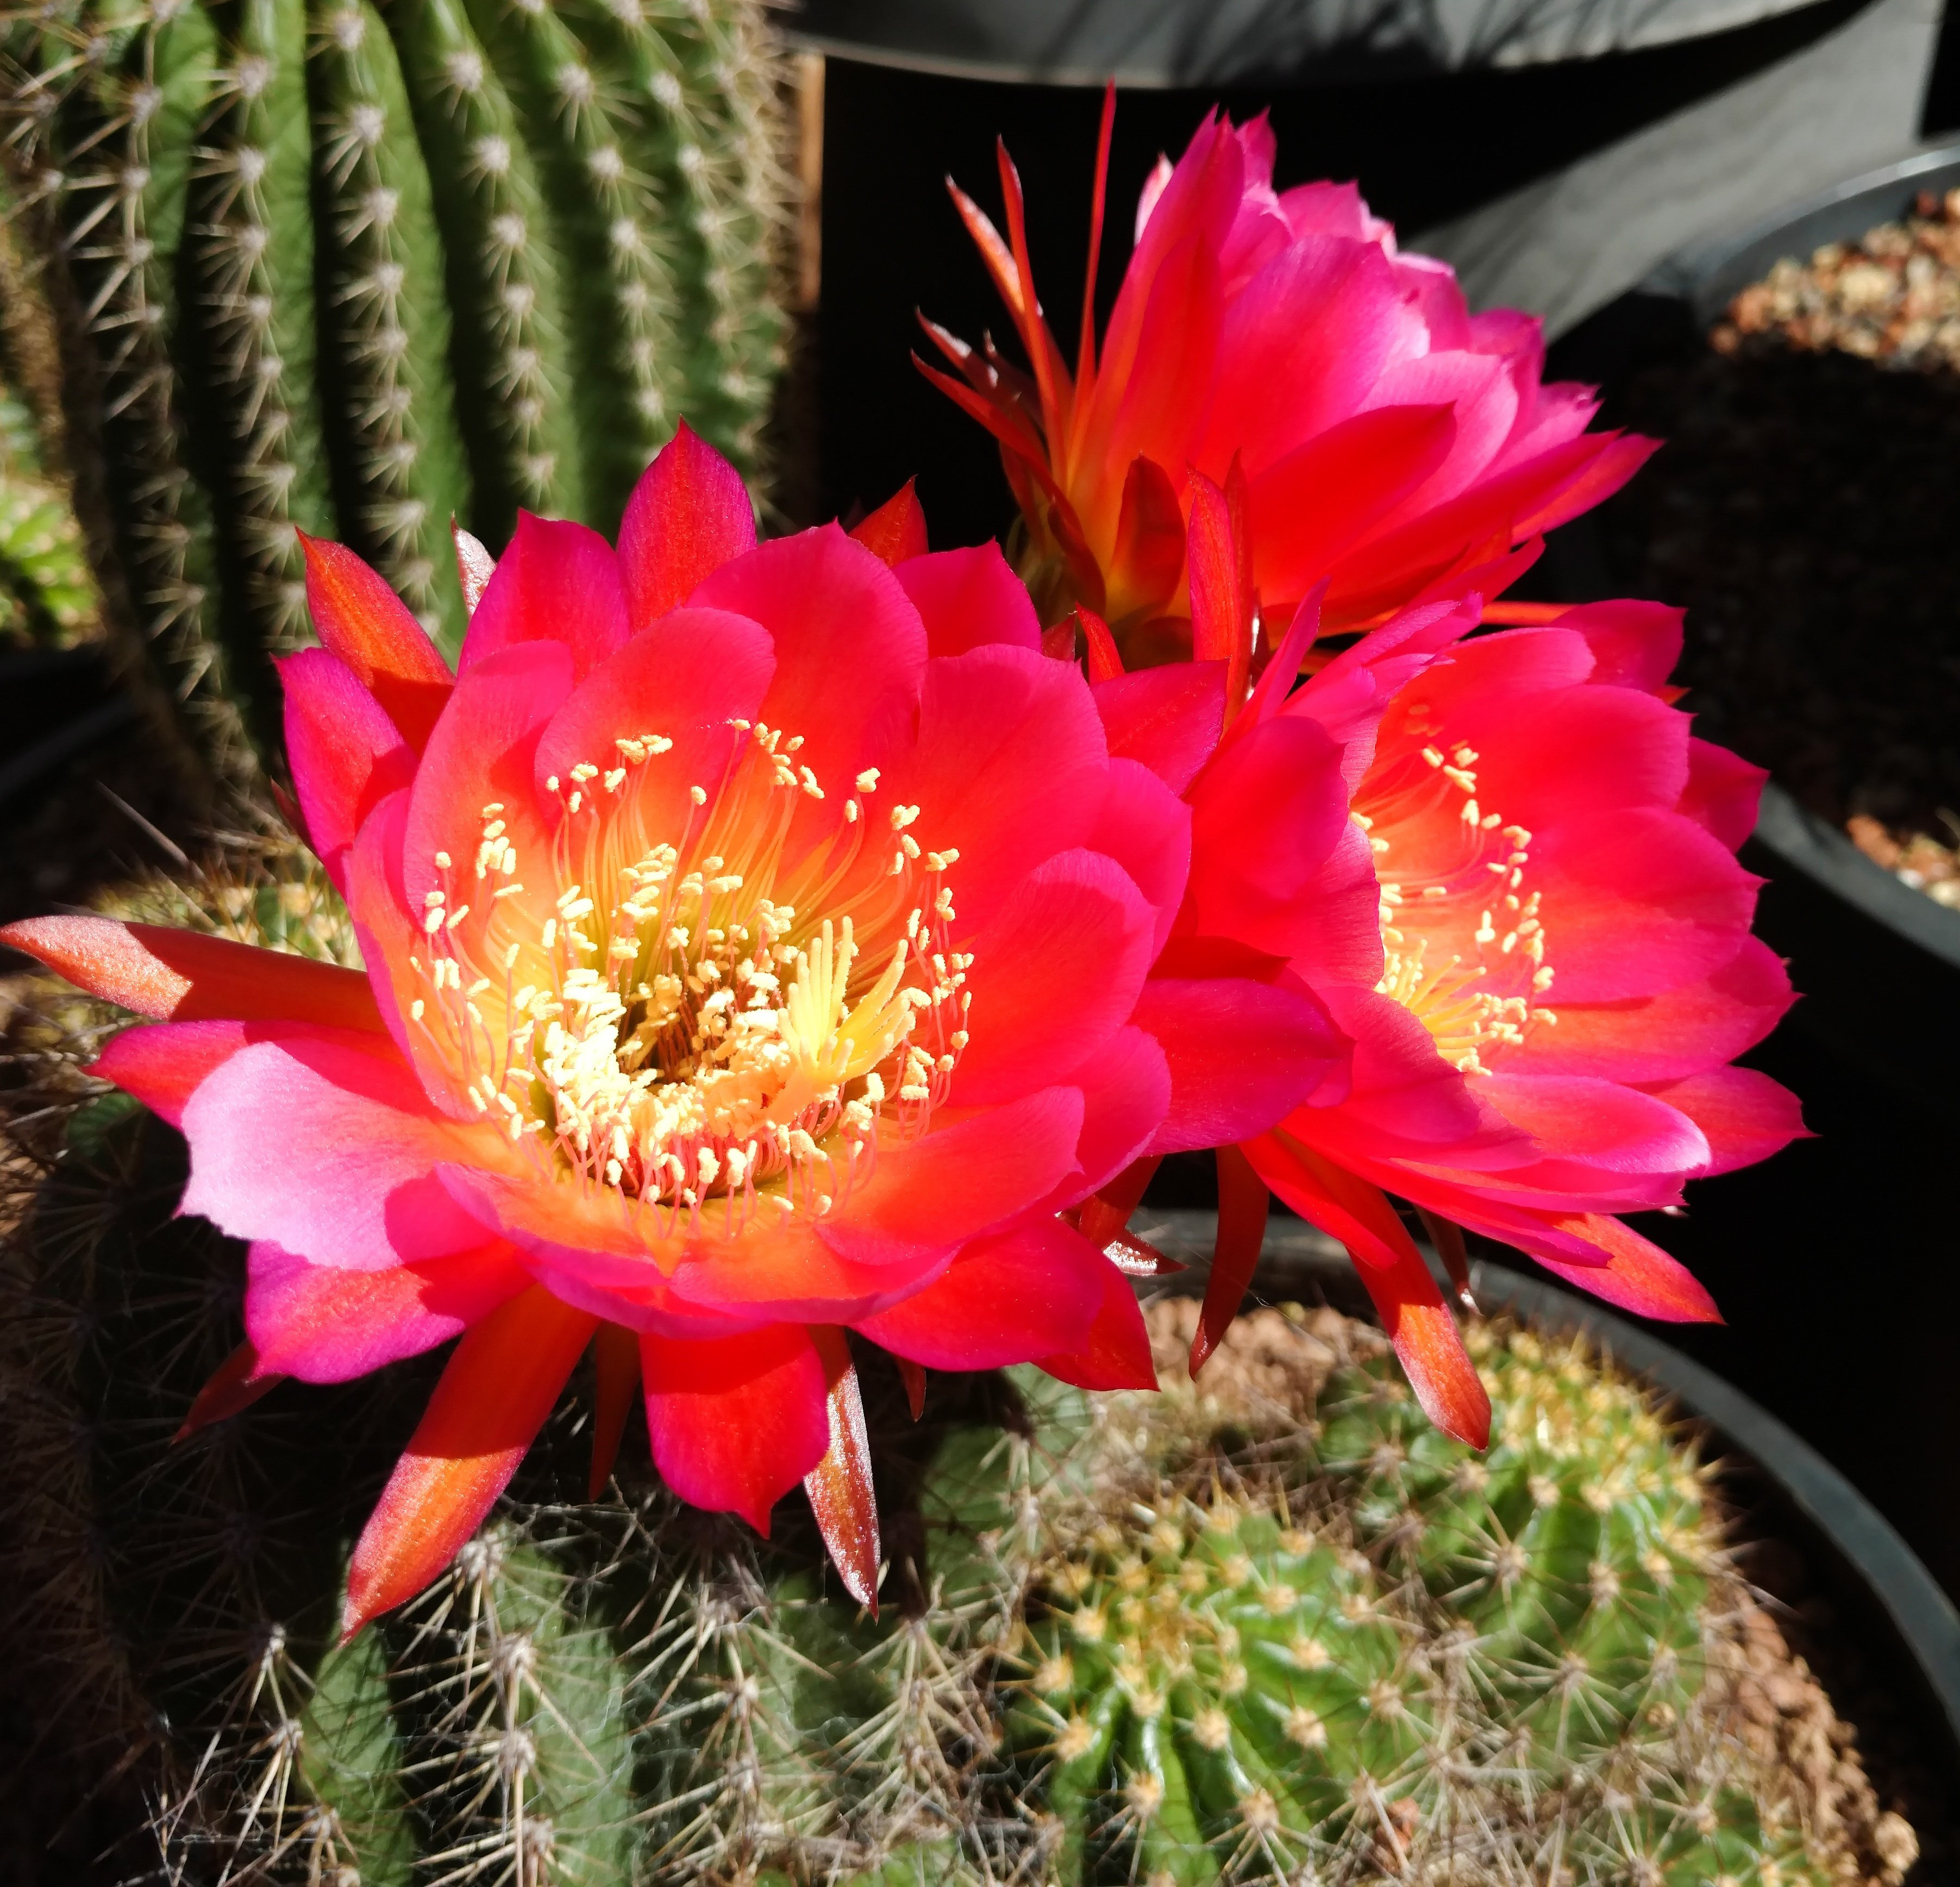 Cactus blog page 4 of 207 cactus jungle it must be spring we call this one echinopsis california rose mightylinksfo